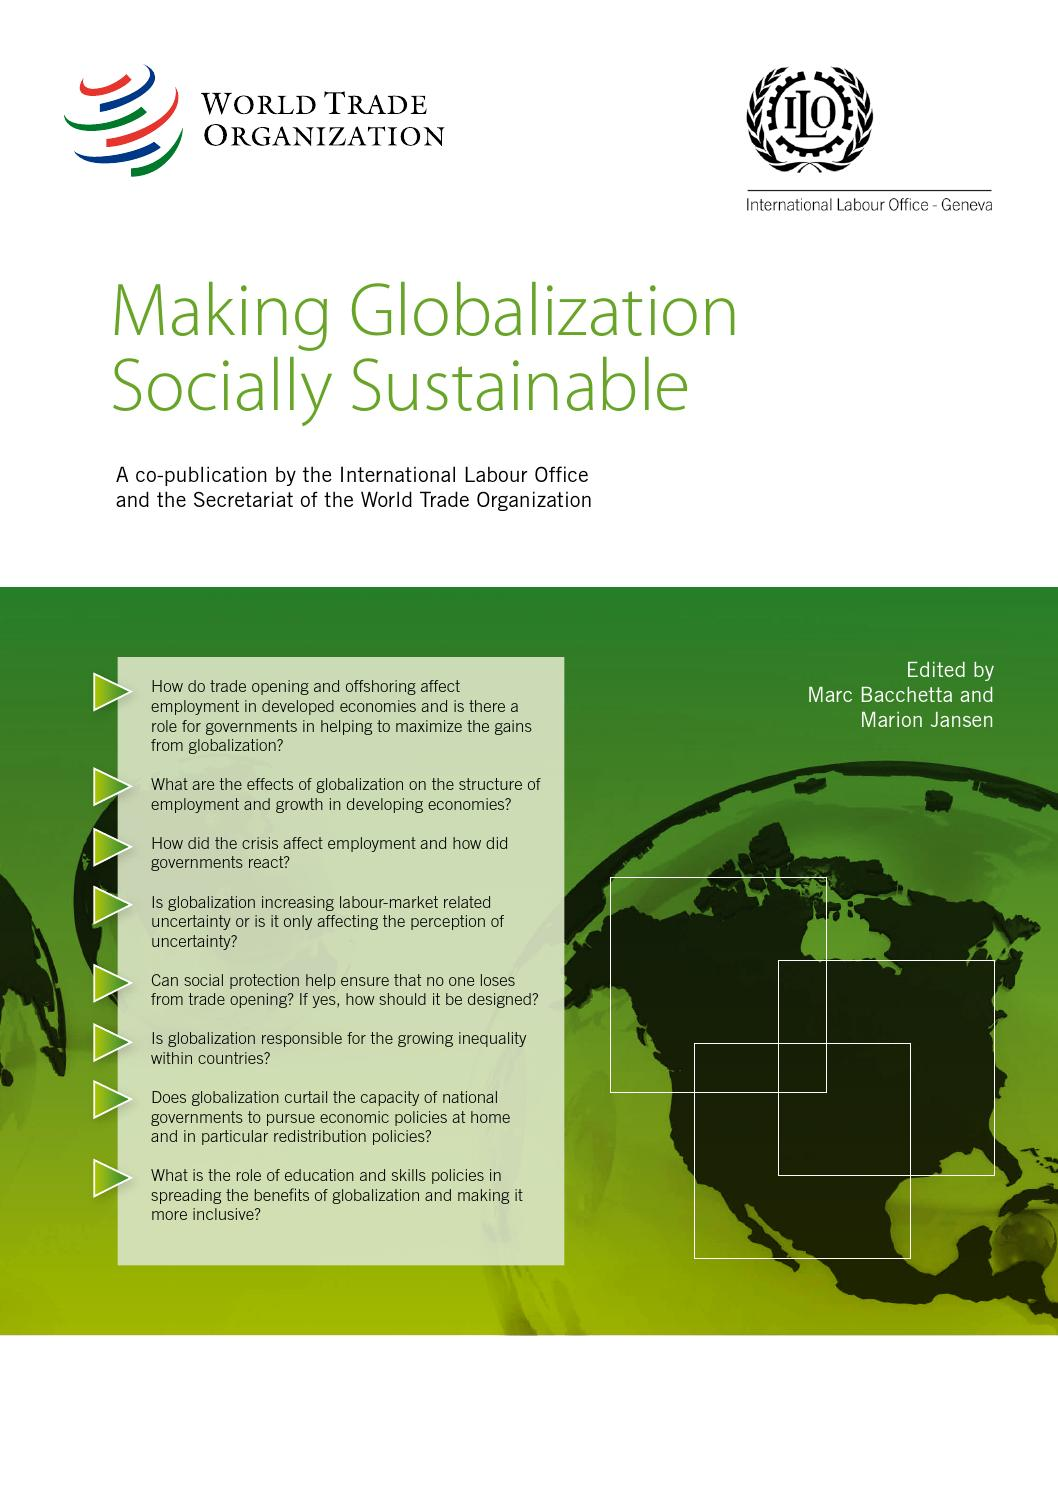 globalization the making of world society An october 2000 washington post/kaiser/harvard survey asked whether the globalization of the world economy is it means we've become a more global society.